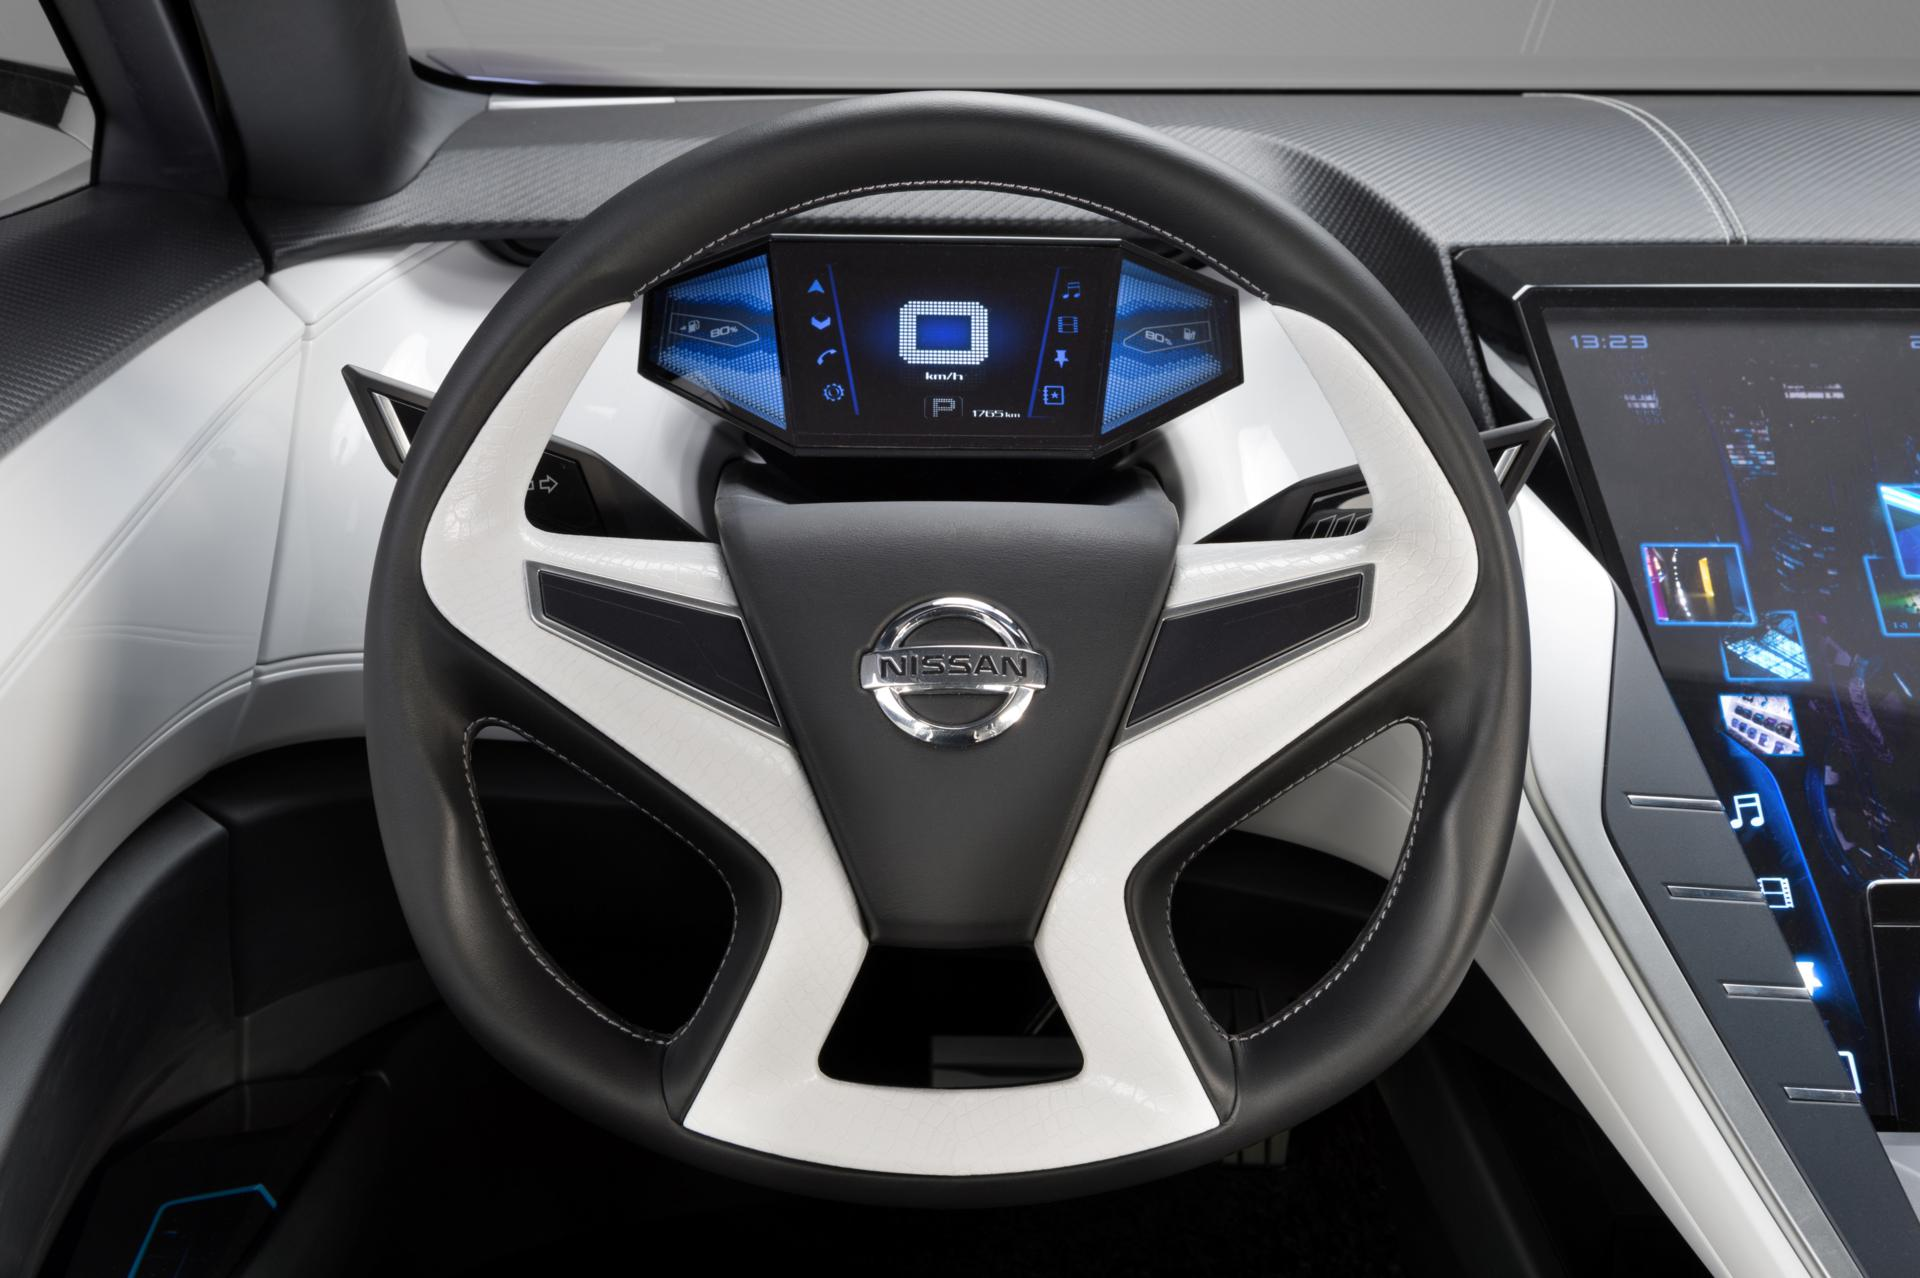 Nissan Concept Car Steering